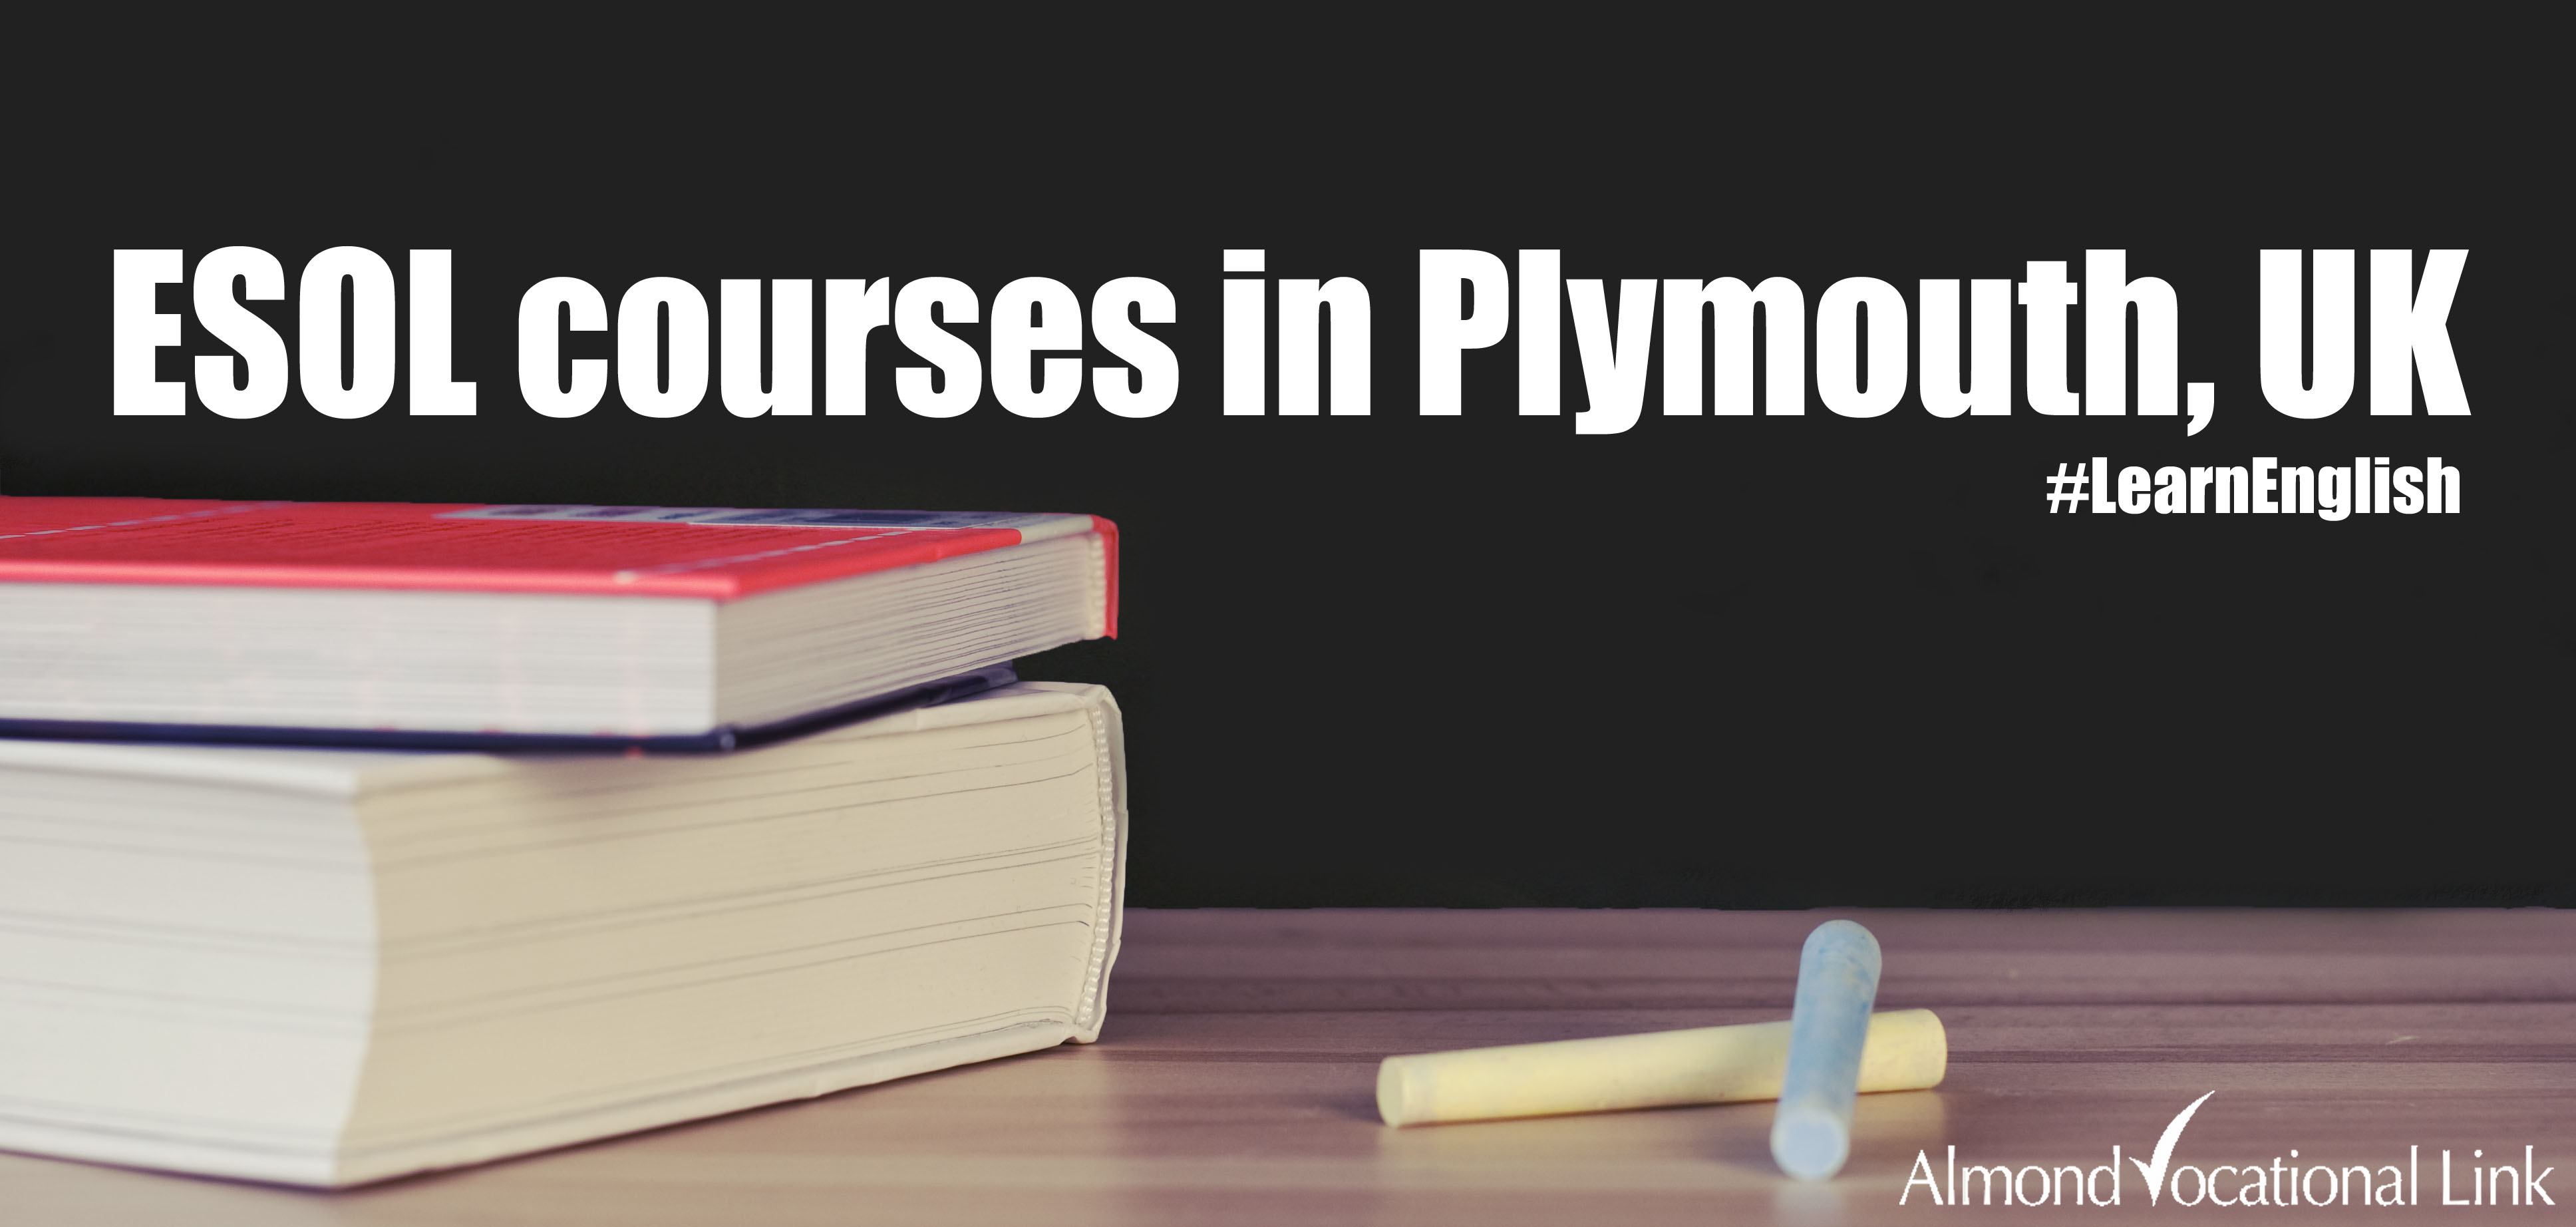 ESOL Courses in Plymouth UK Almond Vocational Link